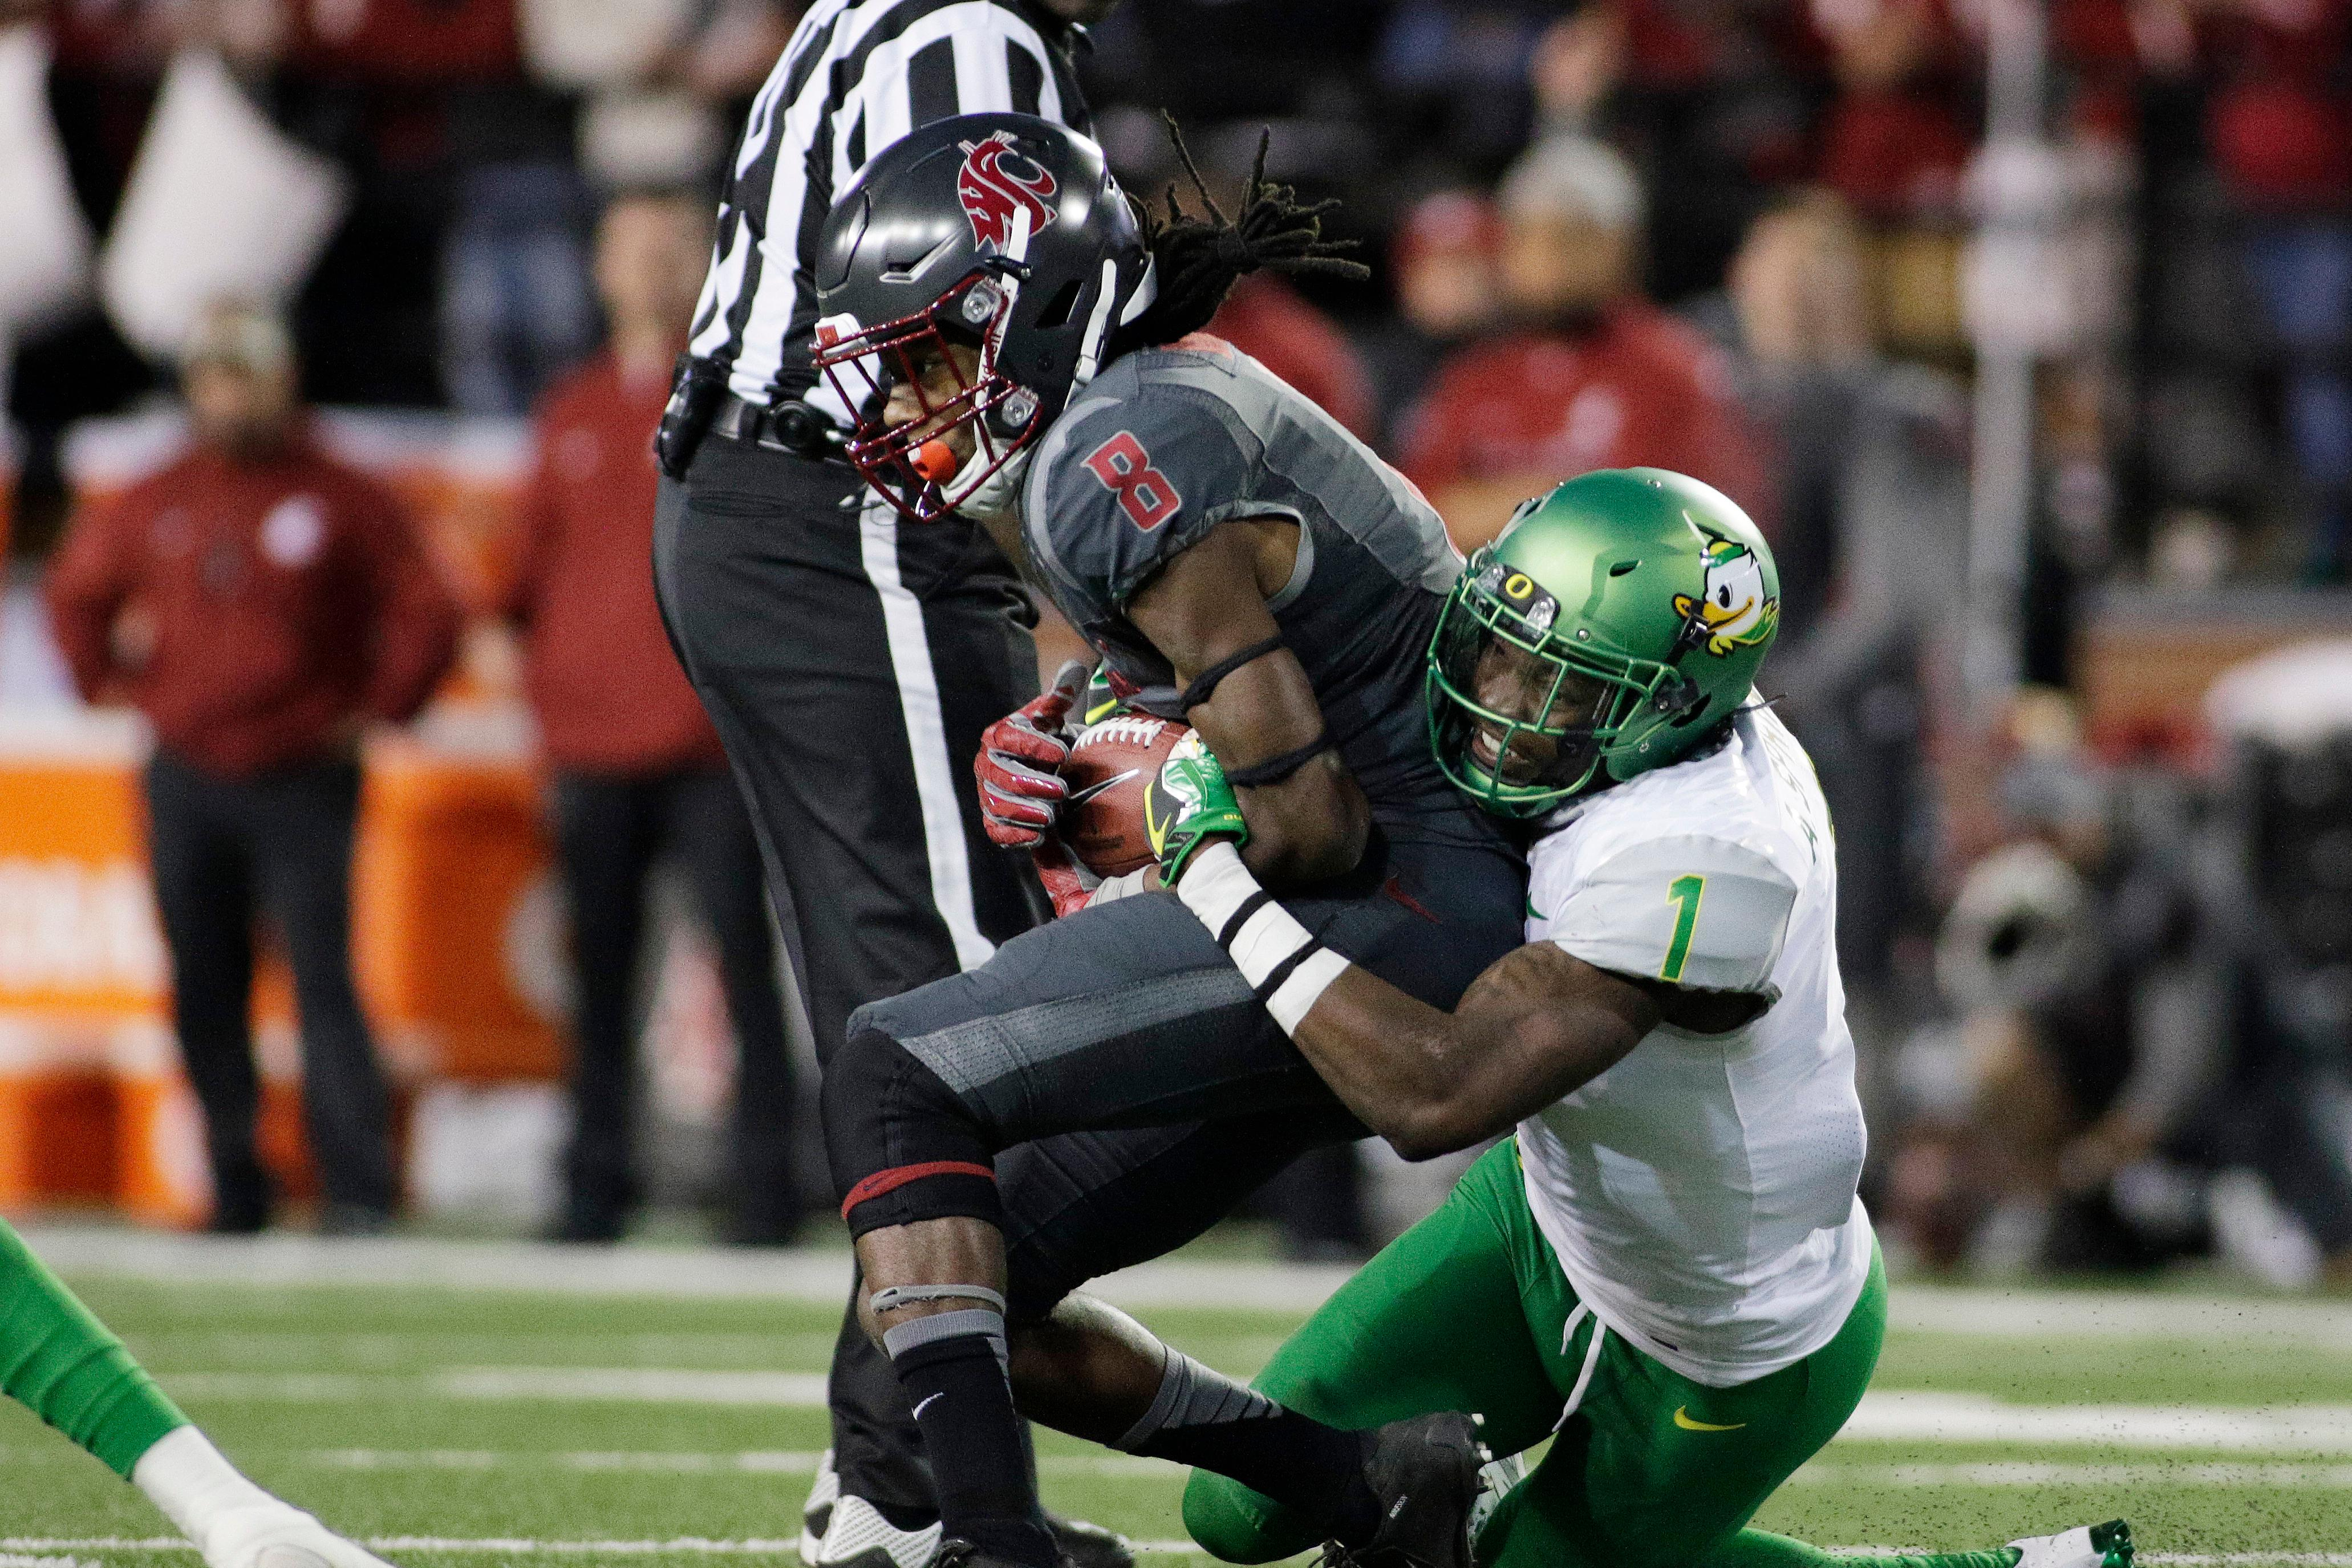 FILE - In this Oct. 1, 2016, file photo, Oregon defensive back Arrion Springs (1) brings down Washington State wide receiver Tavares Martin Jr. (8) during the second half of an NCAA college football game, in Pullman, Wash. Springs was selected to the 2017 AP All-Conference Pac-12 team announced Thursday, Dec. 7, 2017. (AP Photo/Young Kwak, File)